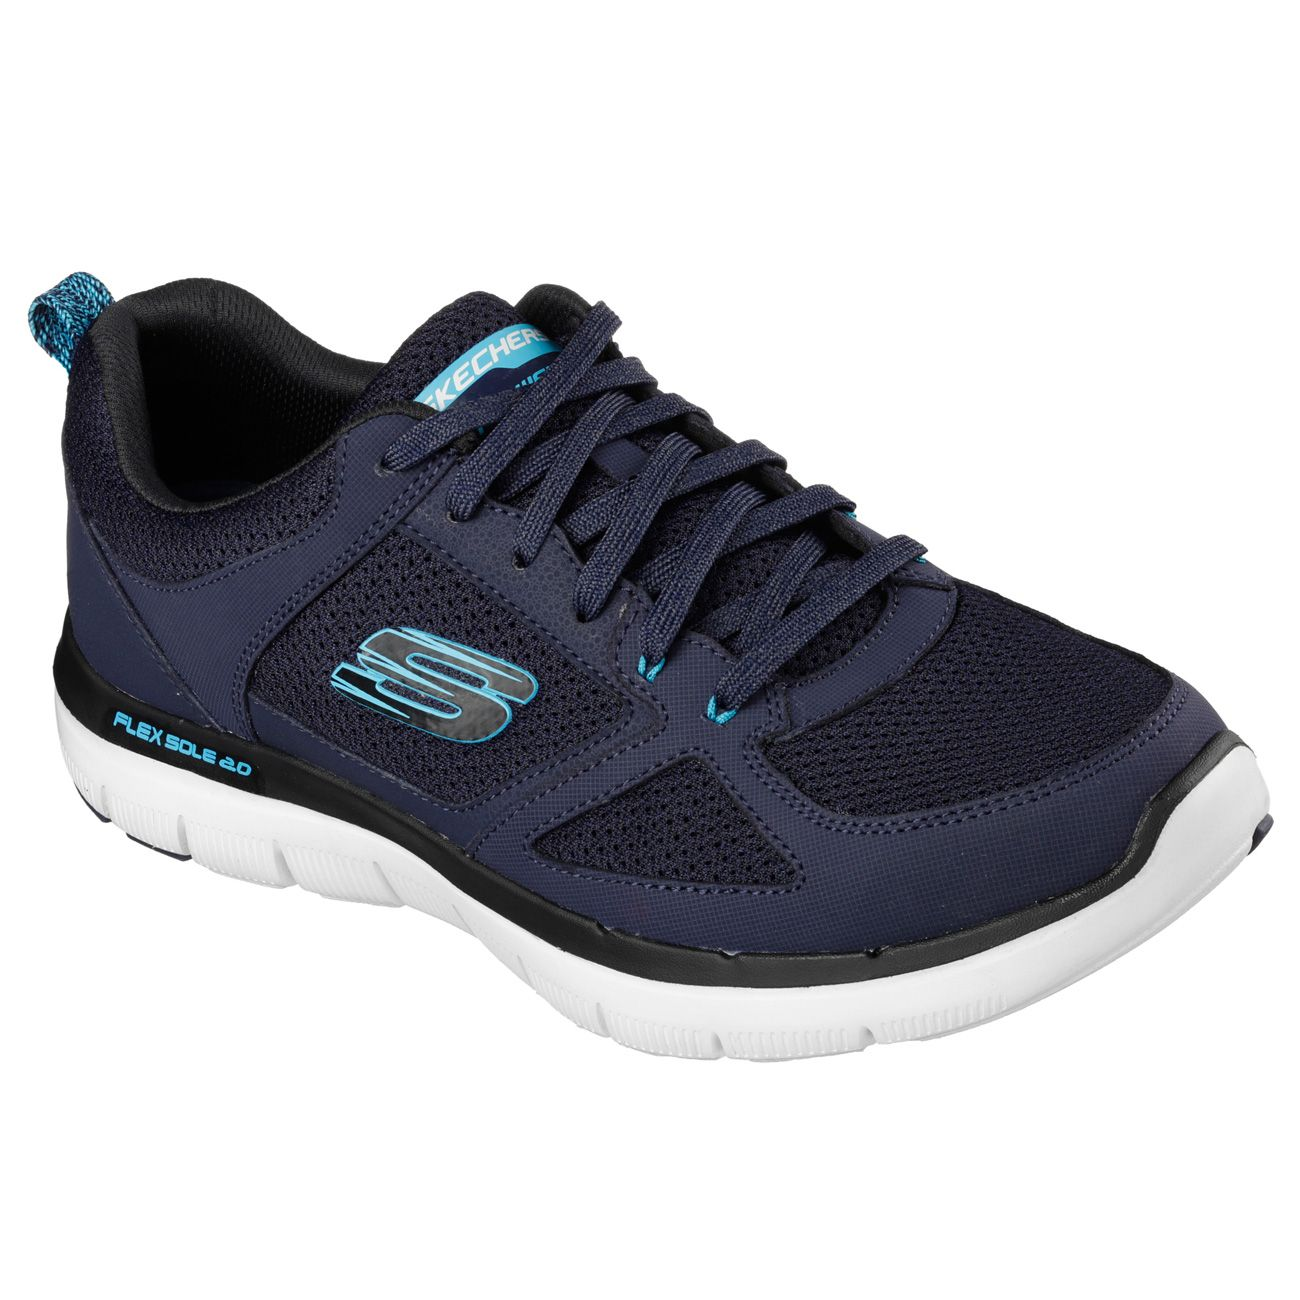 Skechers Gym Shoes Mens